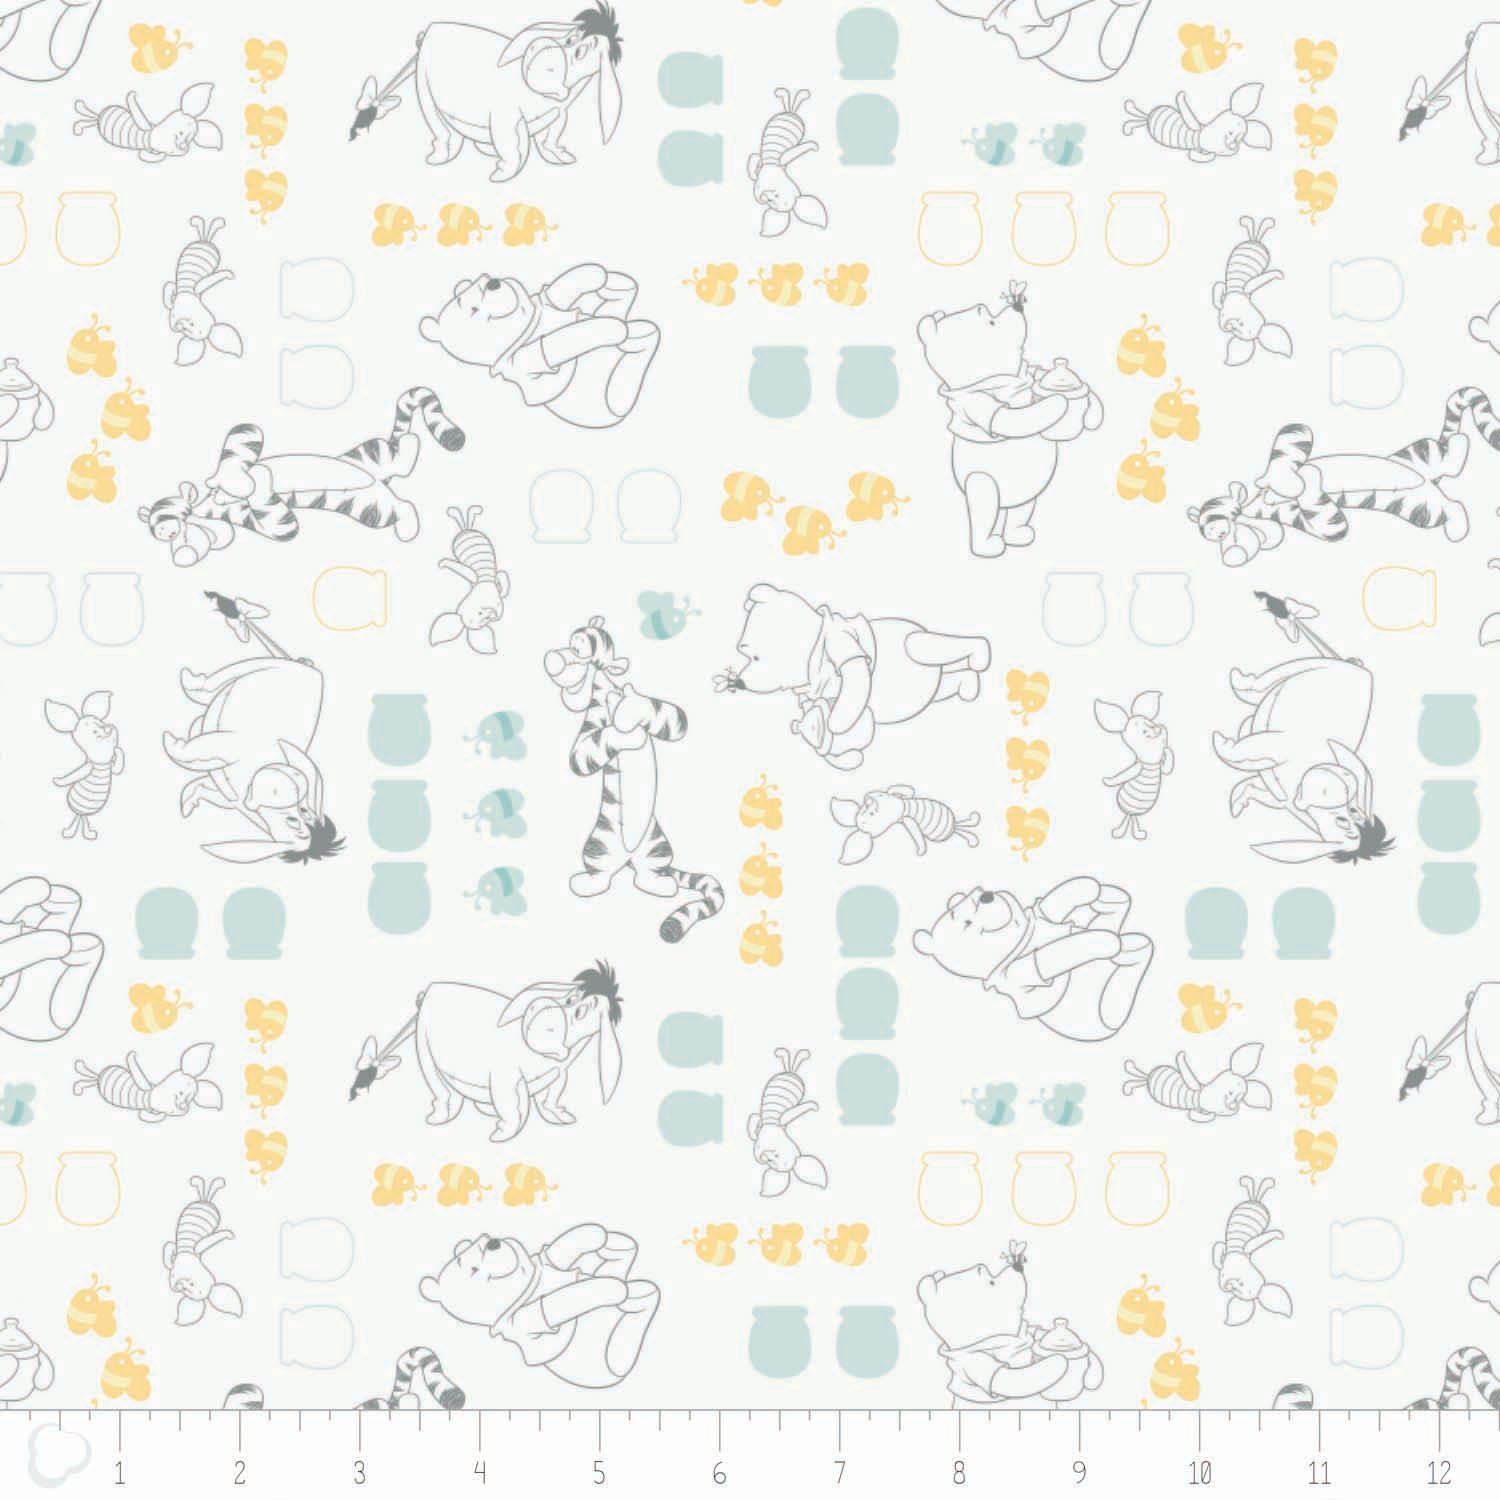 Winnie the Pooh & Friends Yardage Fabric by Camelot Design Studio - Disney for Camelot Fabric 85430101 - 2